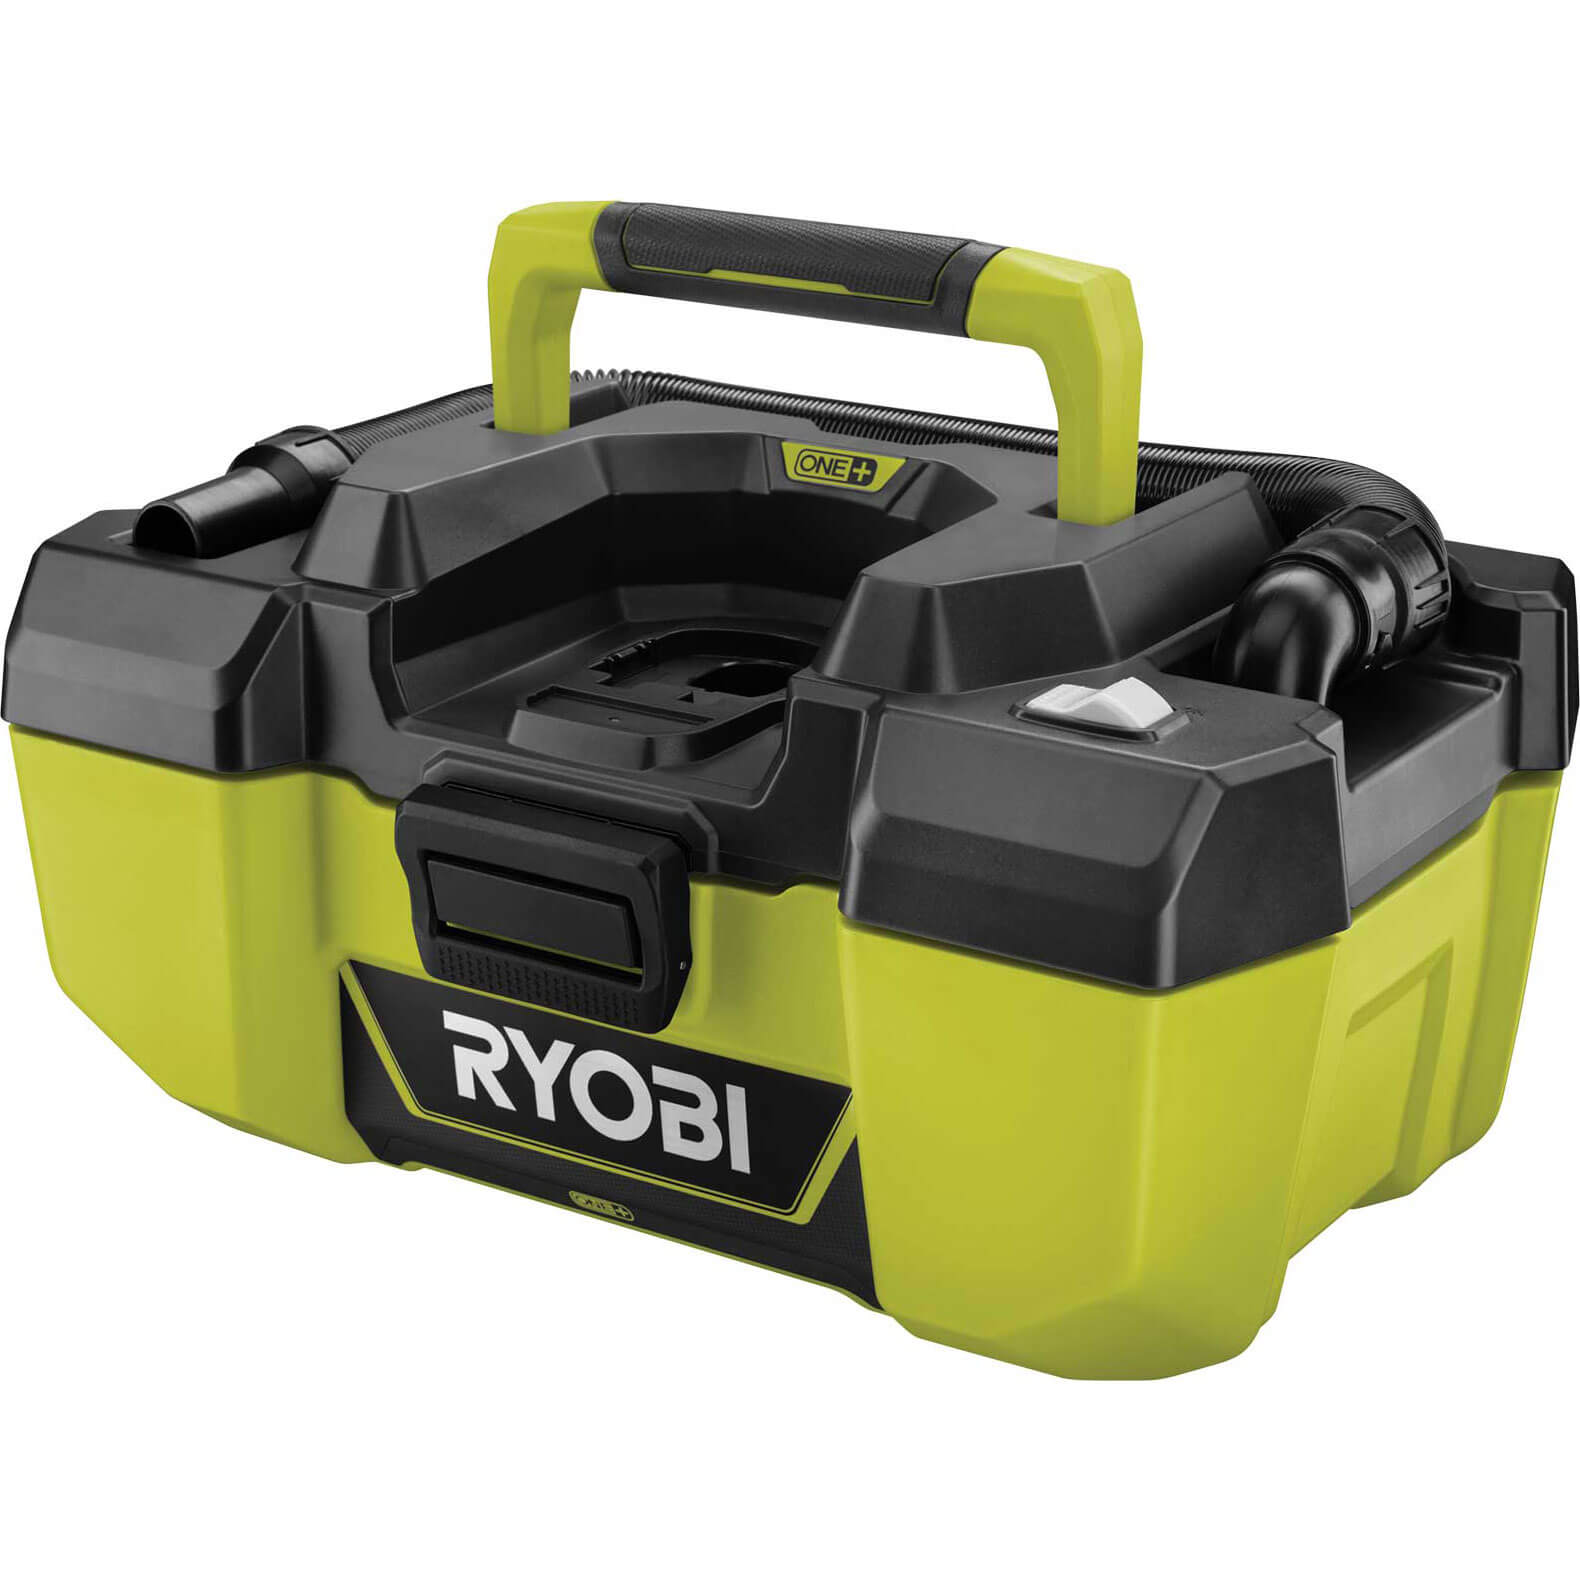 Our Short Lived Ryobi Cordless Vacuums